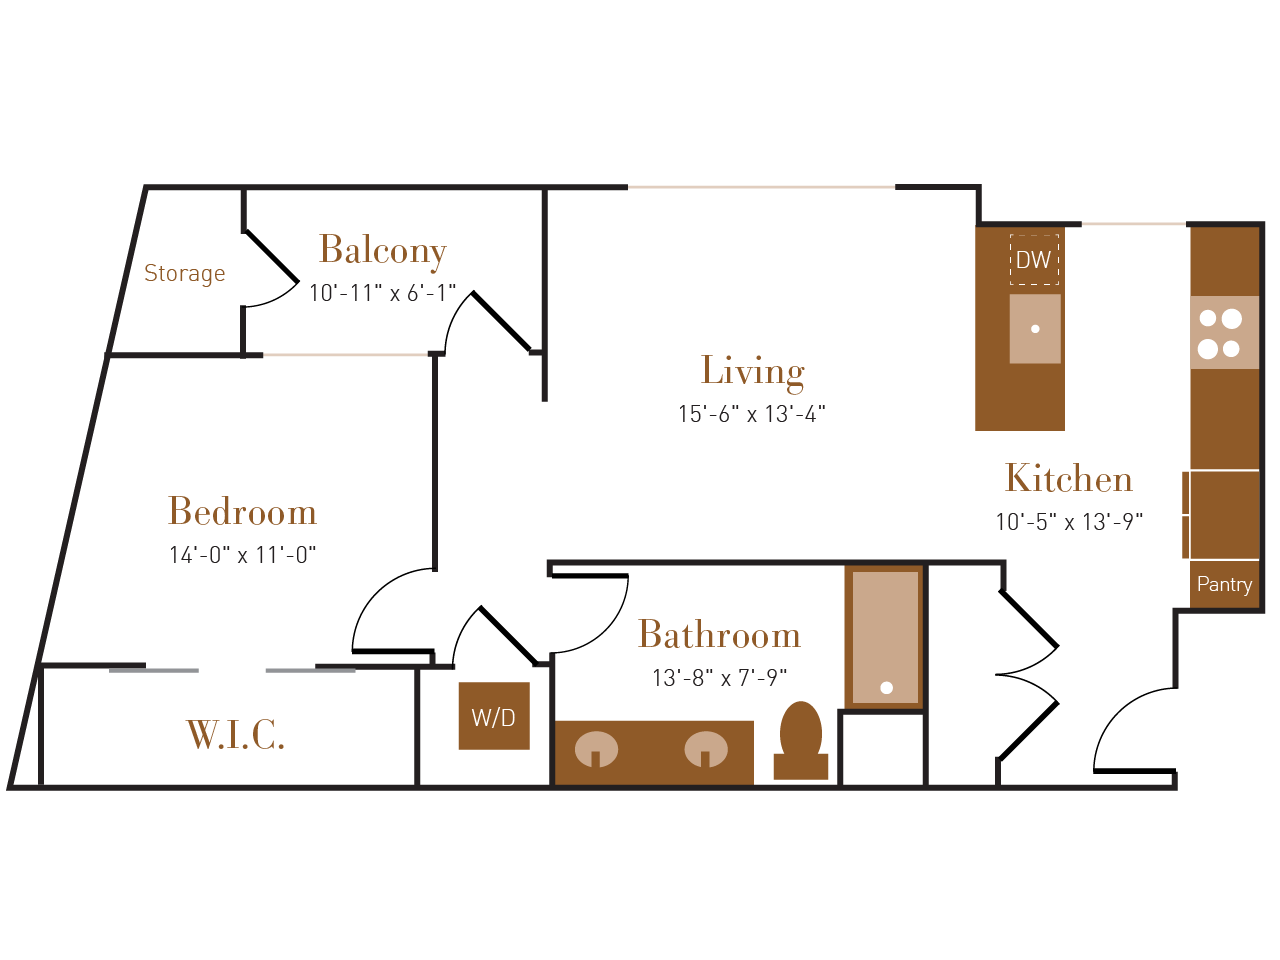 A Seven A floor plan diagram. One bedroom, one bathroom, an open kitchen and living area, a balcony, and a washer dryer.